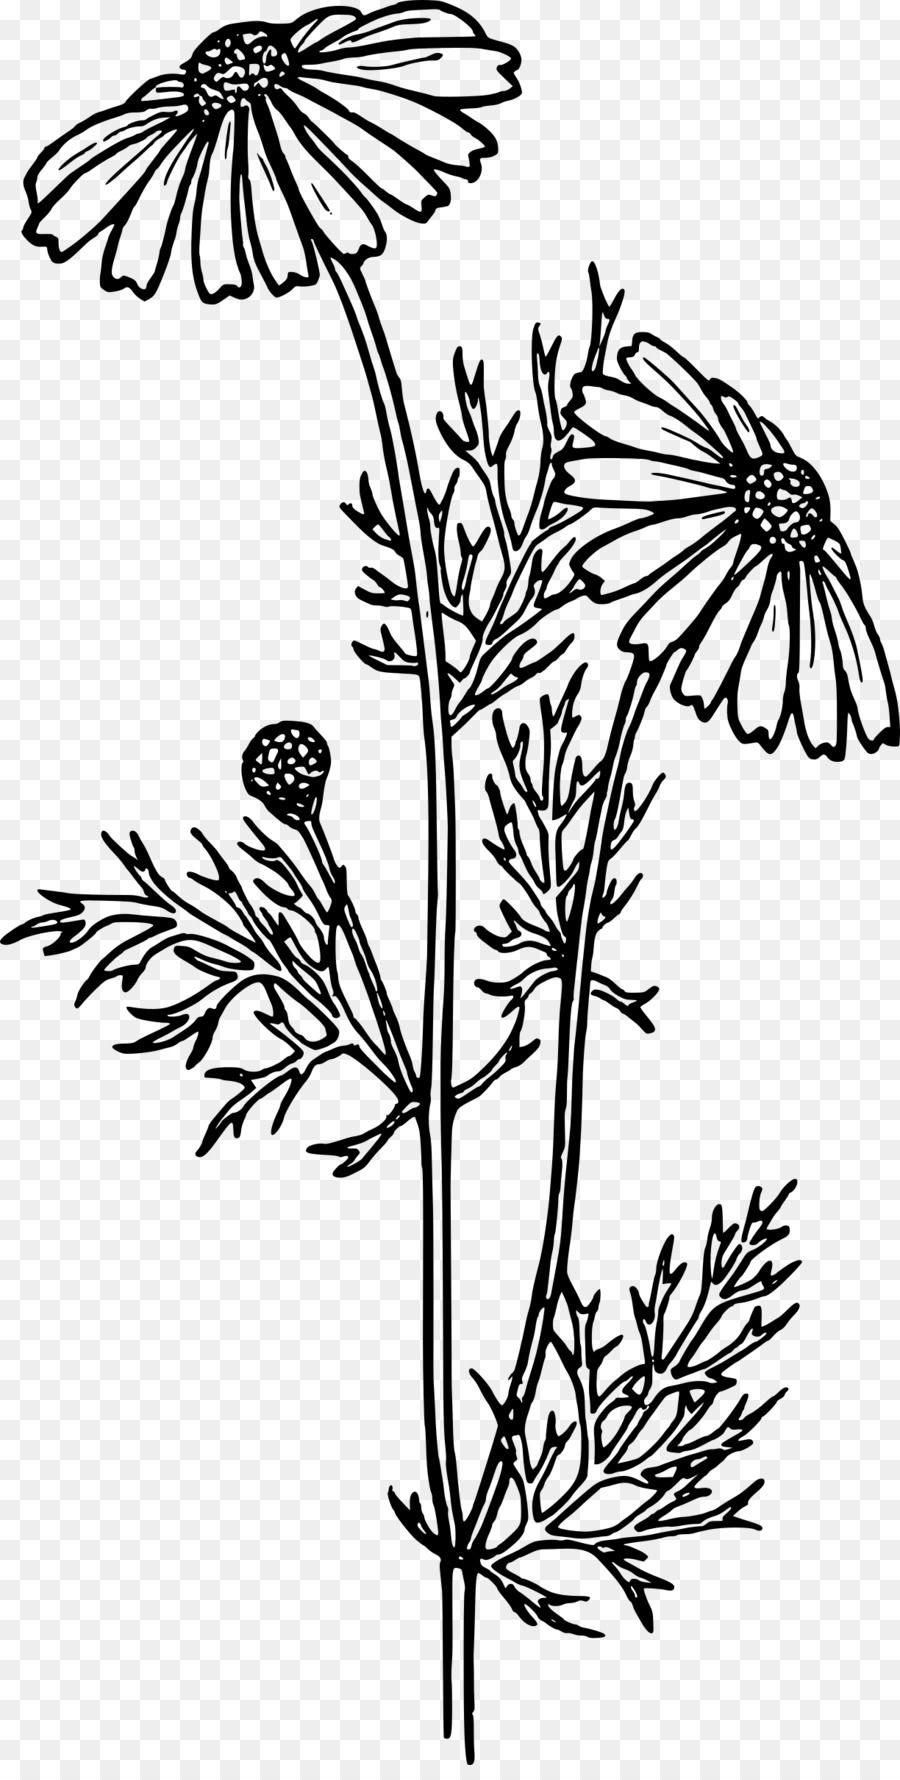 Flower black and white realistic. Butterfly whitetransparent png image